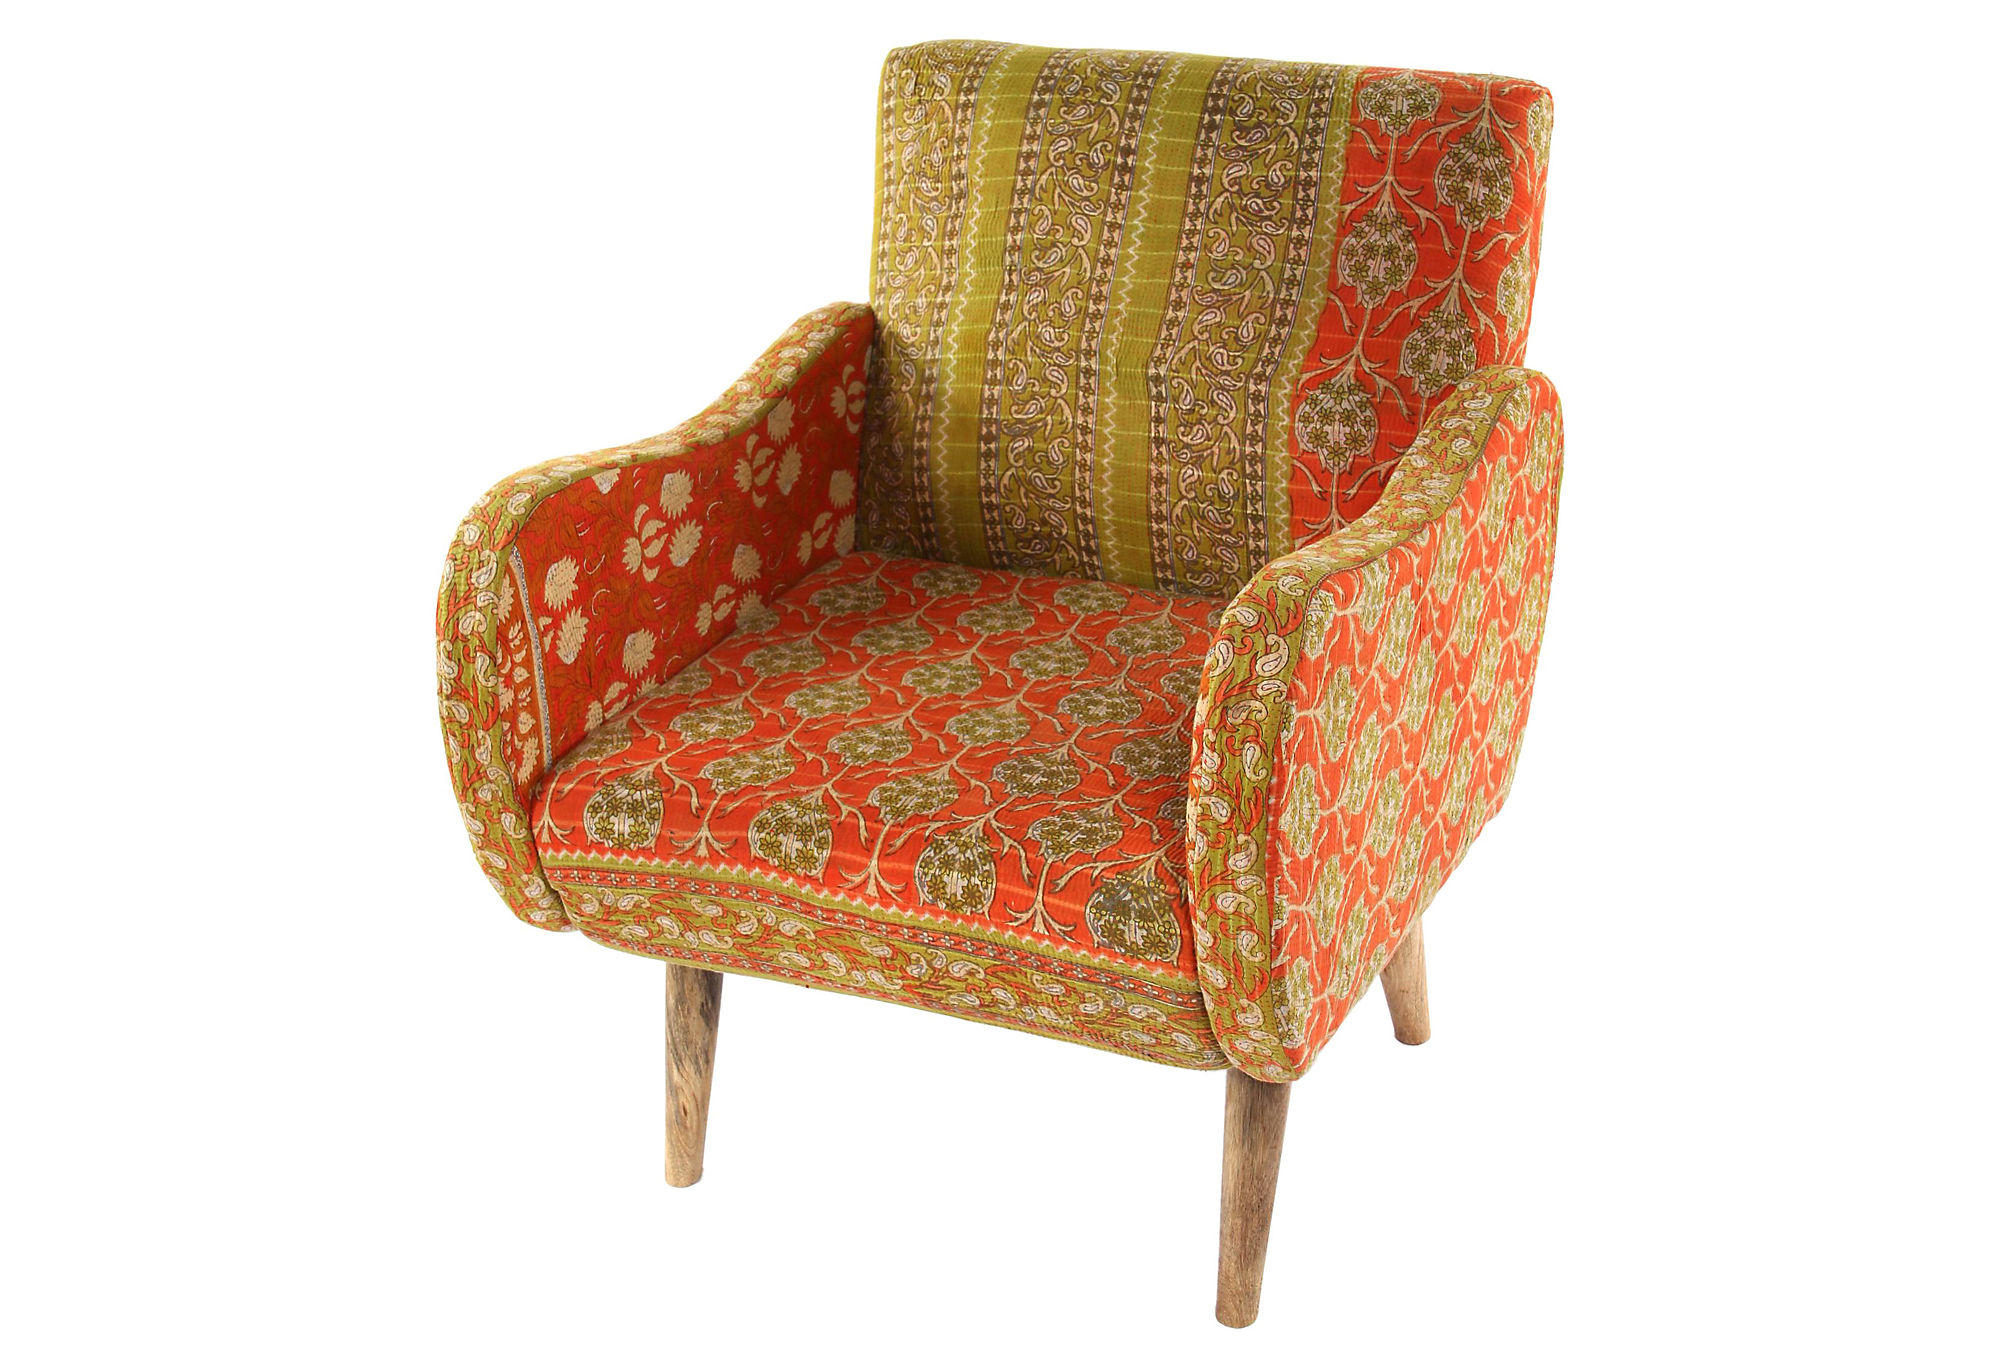 Anorak Chairs Kantha Accent Chair Orange Green Kantha From One Kings Lane